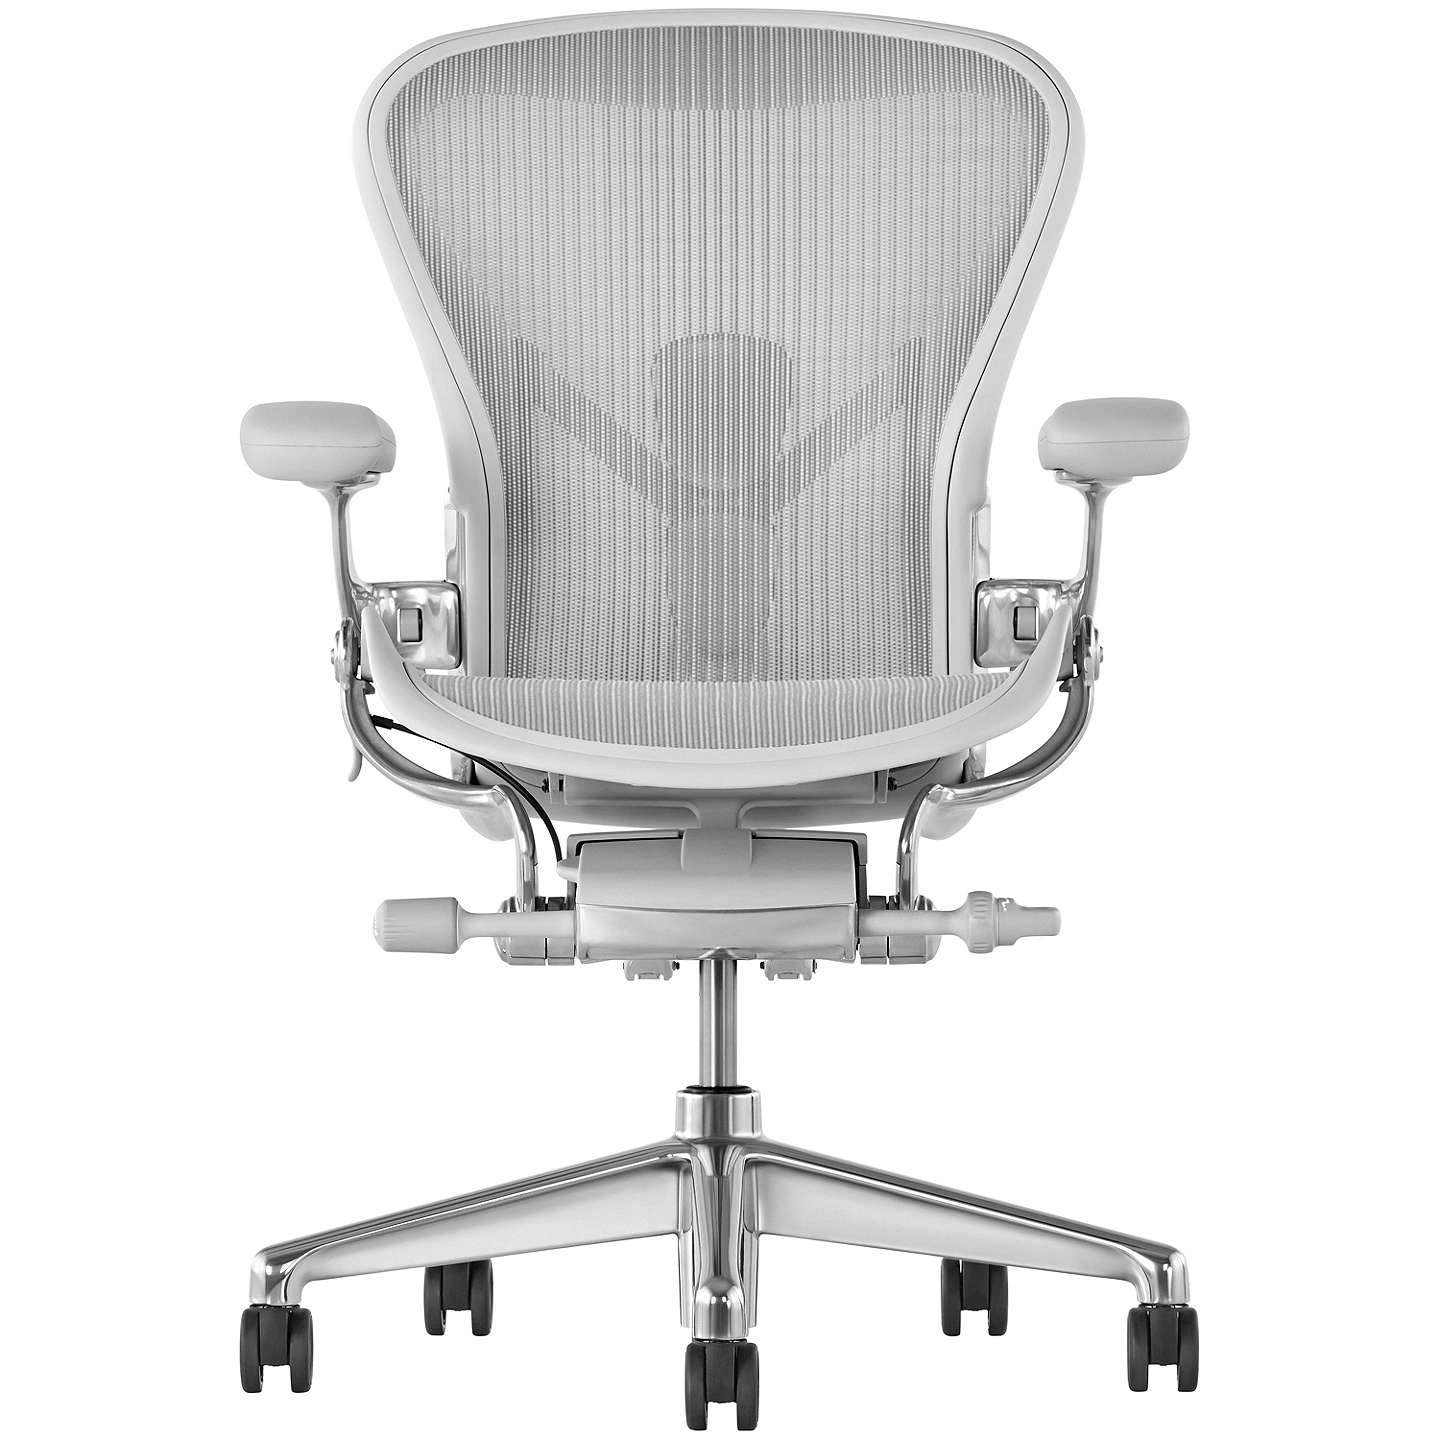 Aeron Aluminum Chairs - 003177271alt5?$rsp-pdp-main-1440$_Best Aeron Aluminum Chairs - 003177271alt5?$rsp-pdp-main-1440$  You Should Have_758193.com/is/image/JohnLewis/003177271alt5?$rsp-pdp-main-1440$